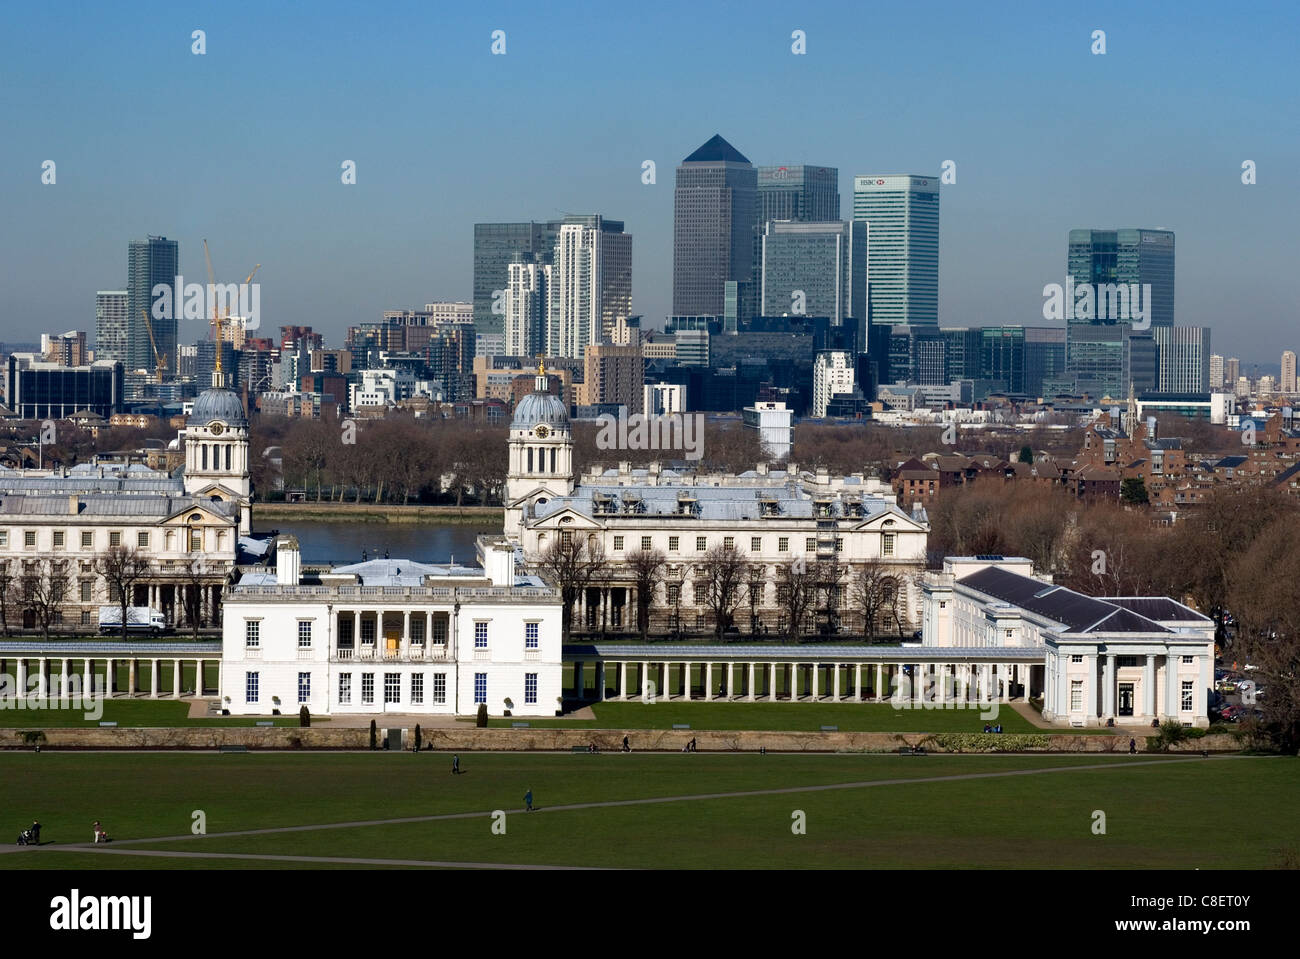 Greenwich Park overlooking the Royal Maritime Museum, UNESCO World Heritage Site, London, England,UK - Stock Image